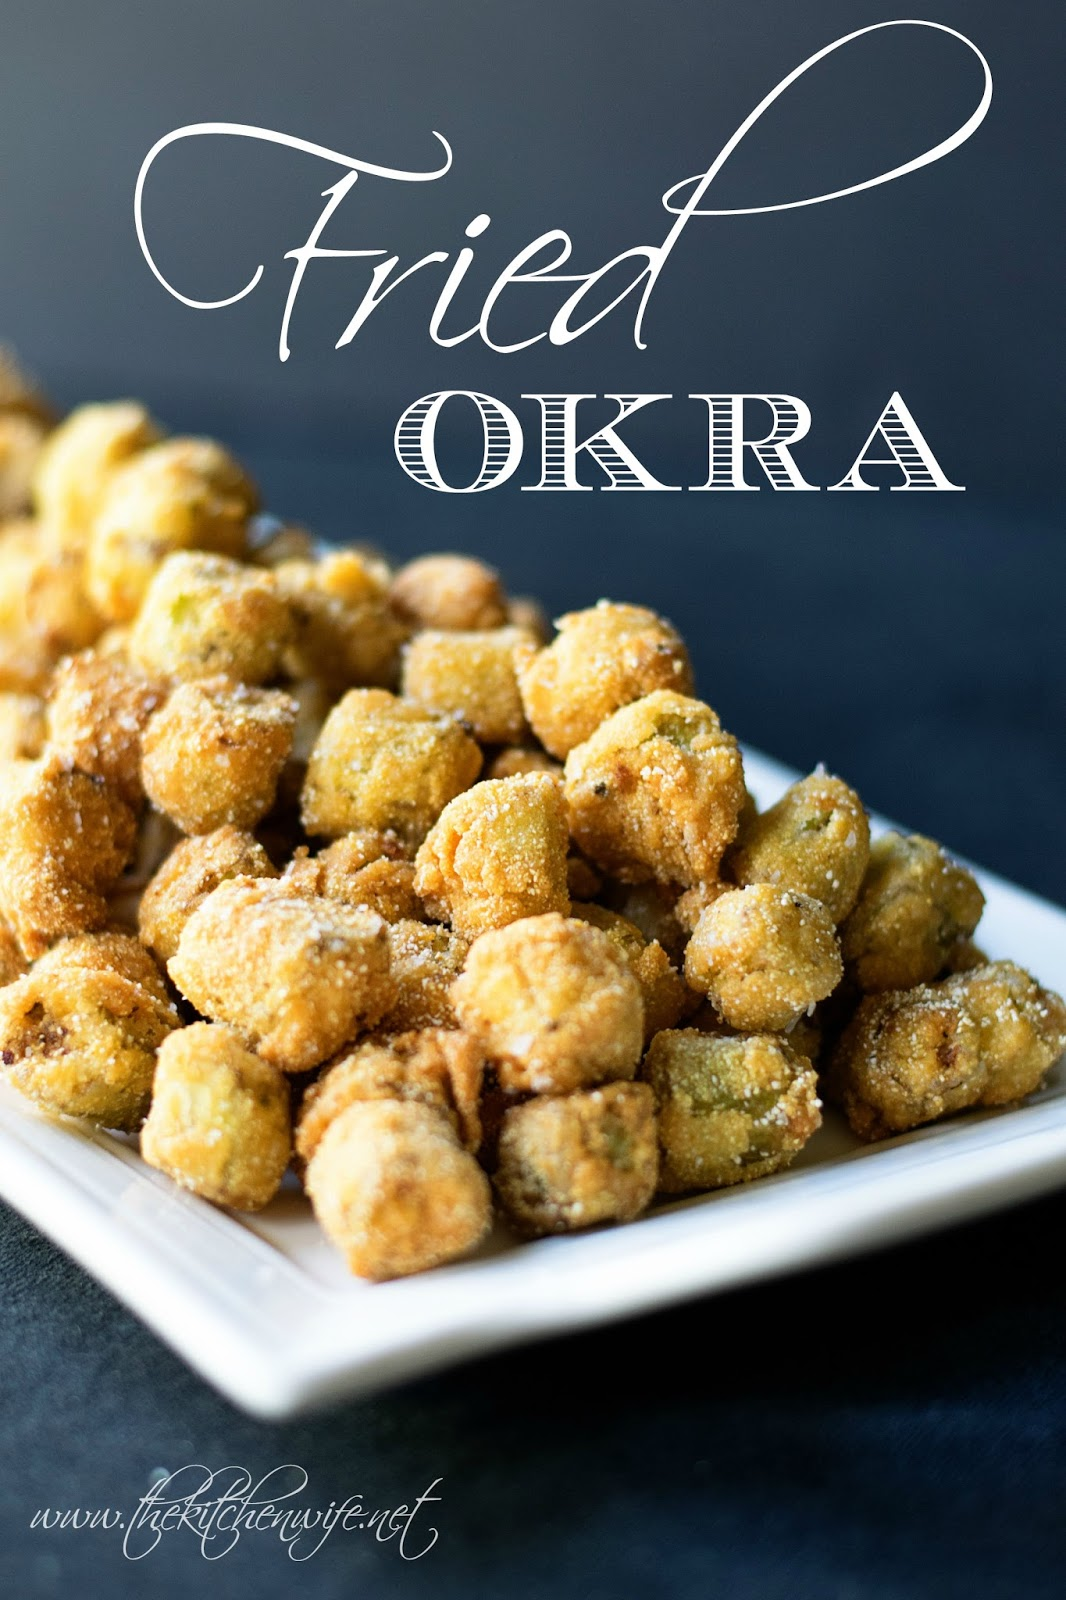 Perfect Fried Okra Recipe - ~The Kitchen Wife~